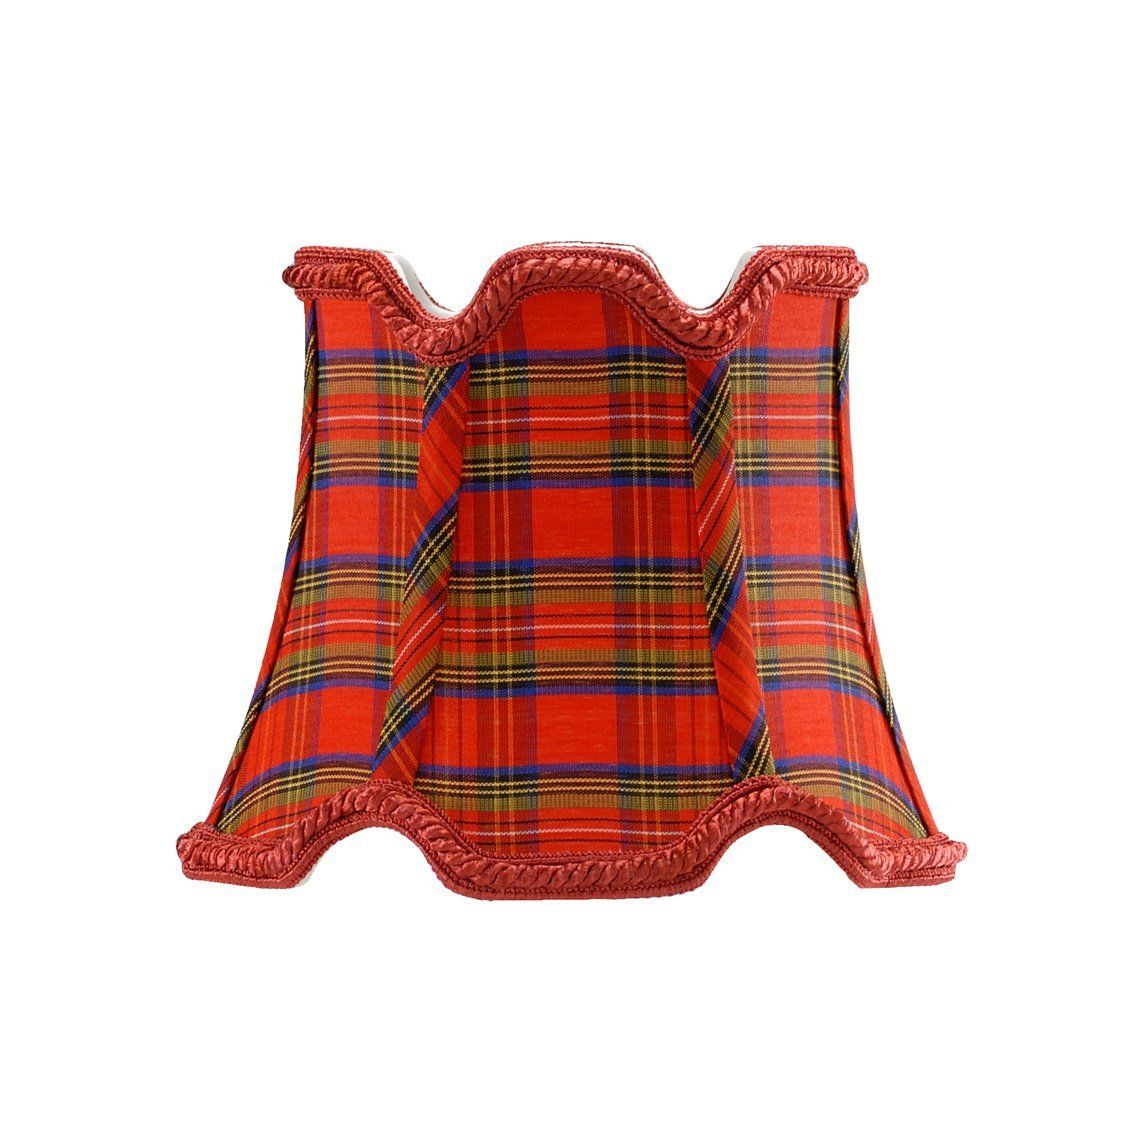 Oval plaid chandelier lampshade red plaid chandeliers and tartan oval plaid chandelier lampshade red arubaitofo Choice Image